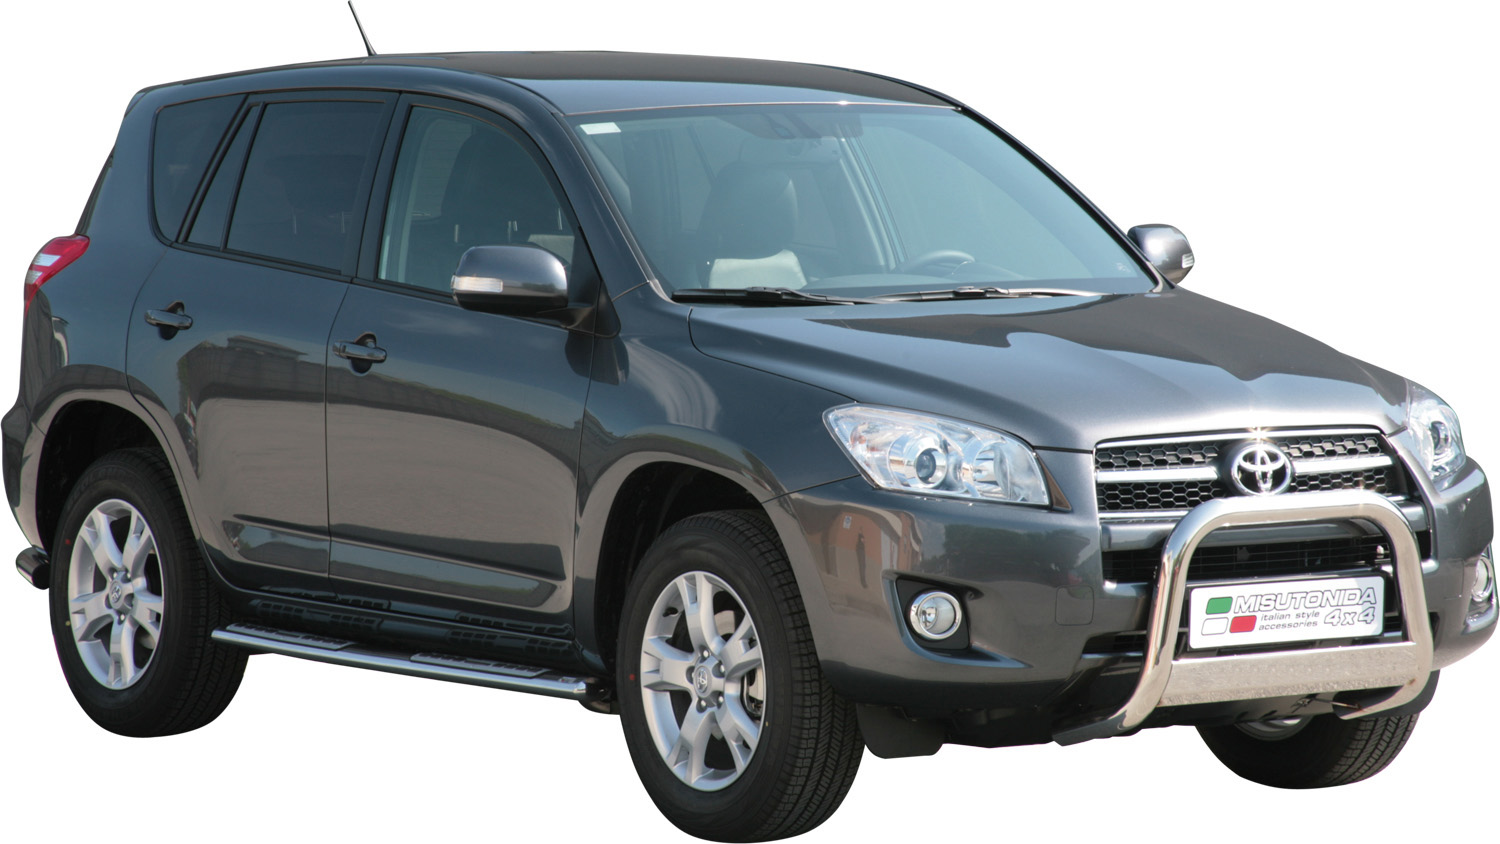 pare buffle inox 63 toyota rav4 2008 2009 ce. Black Bedroom Furniture Sets. Home Design Ideas